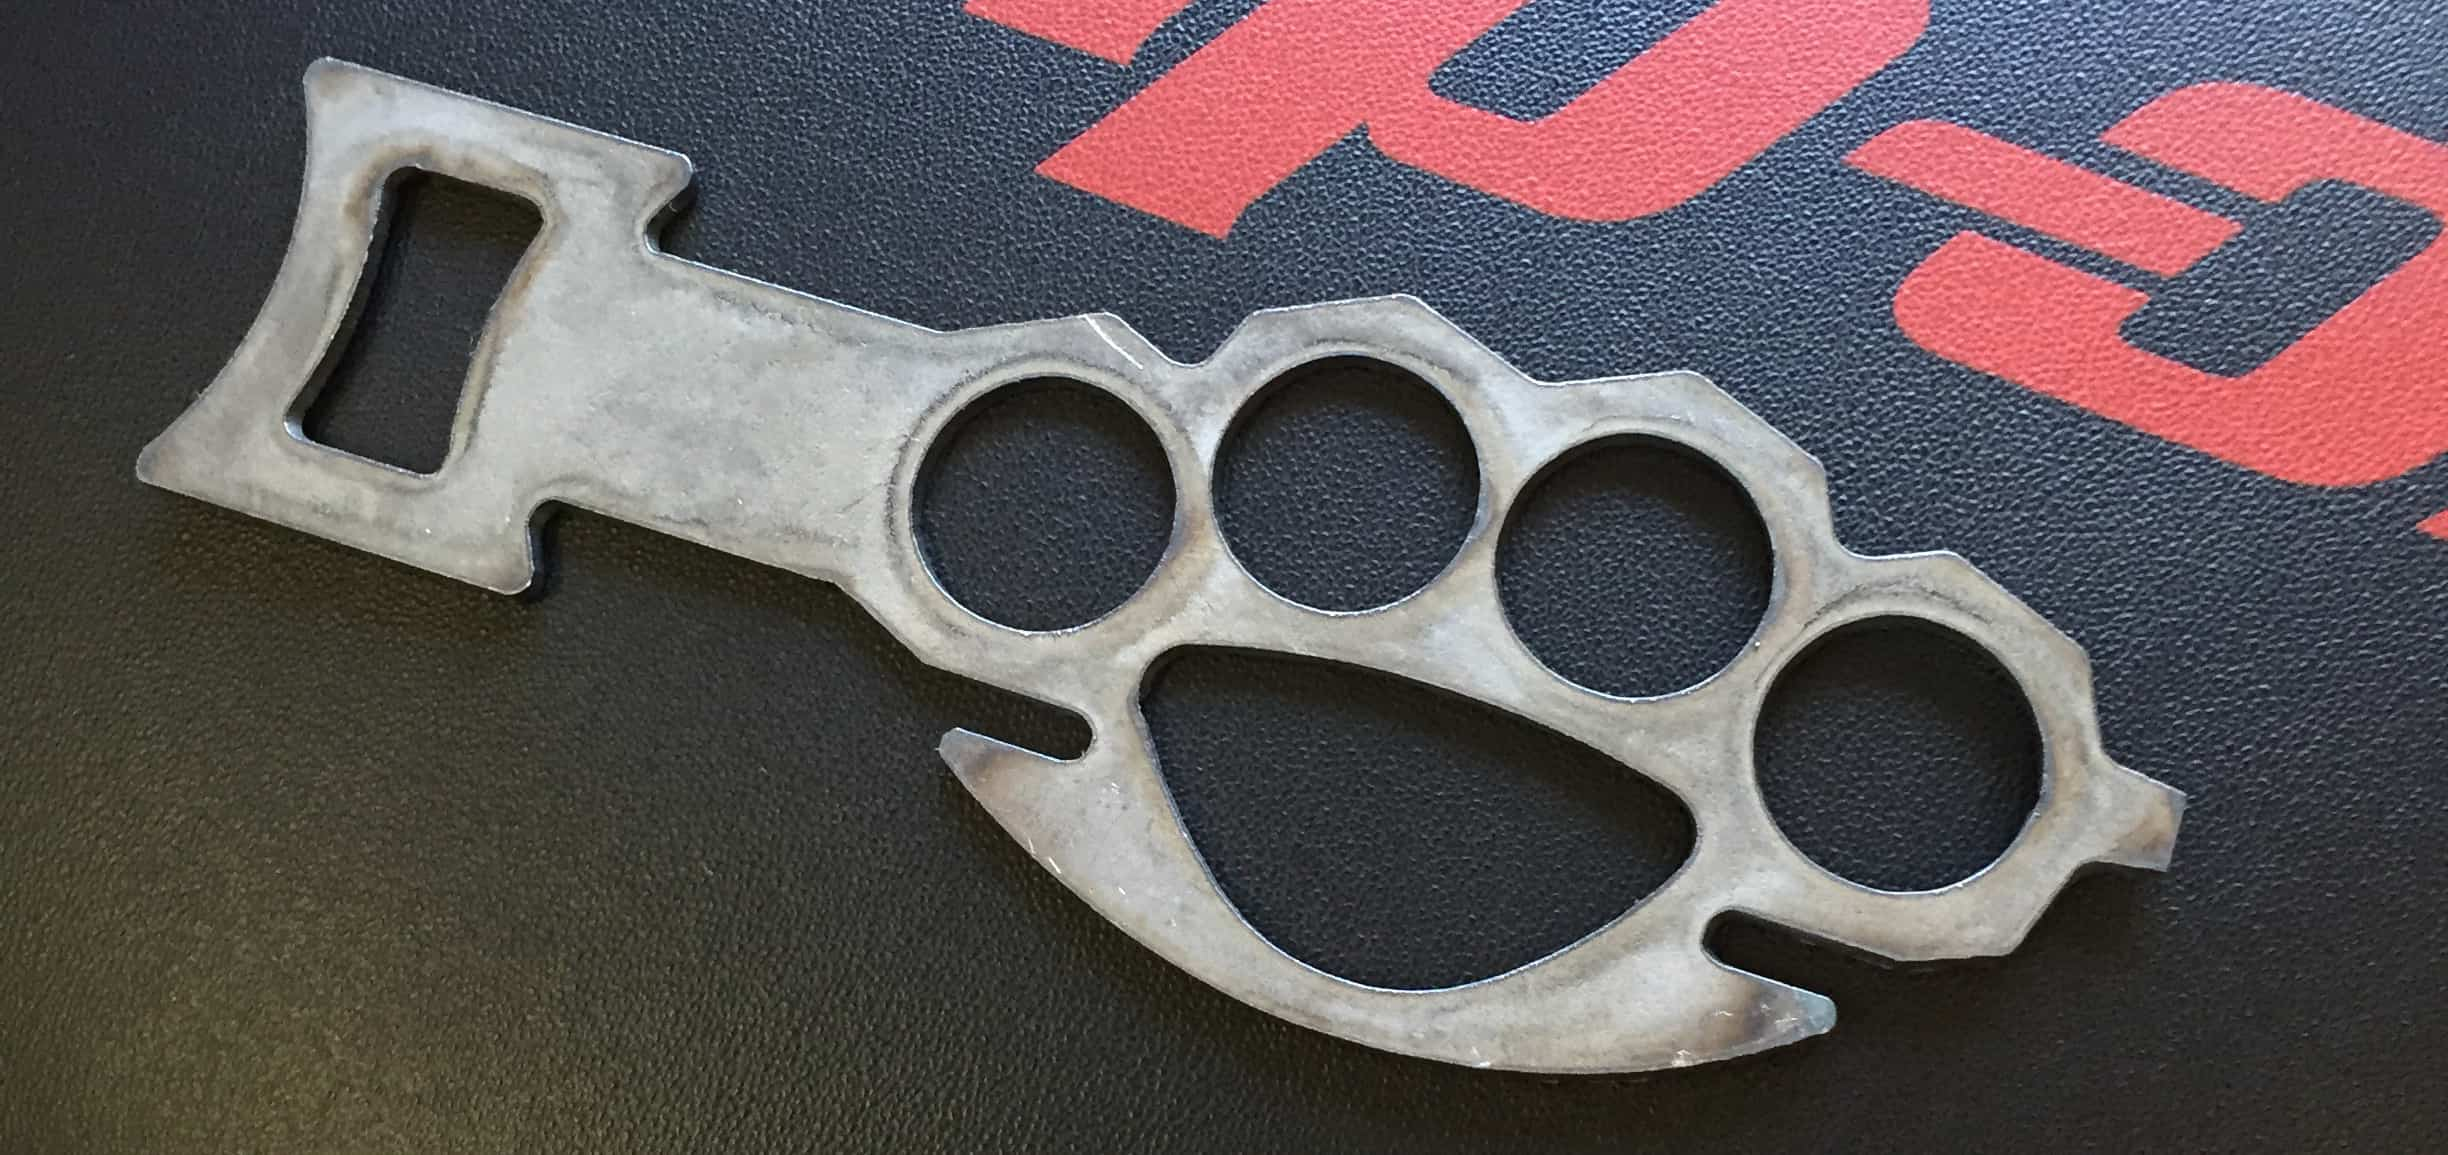 Ripper Knuckle Bottle Opener